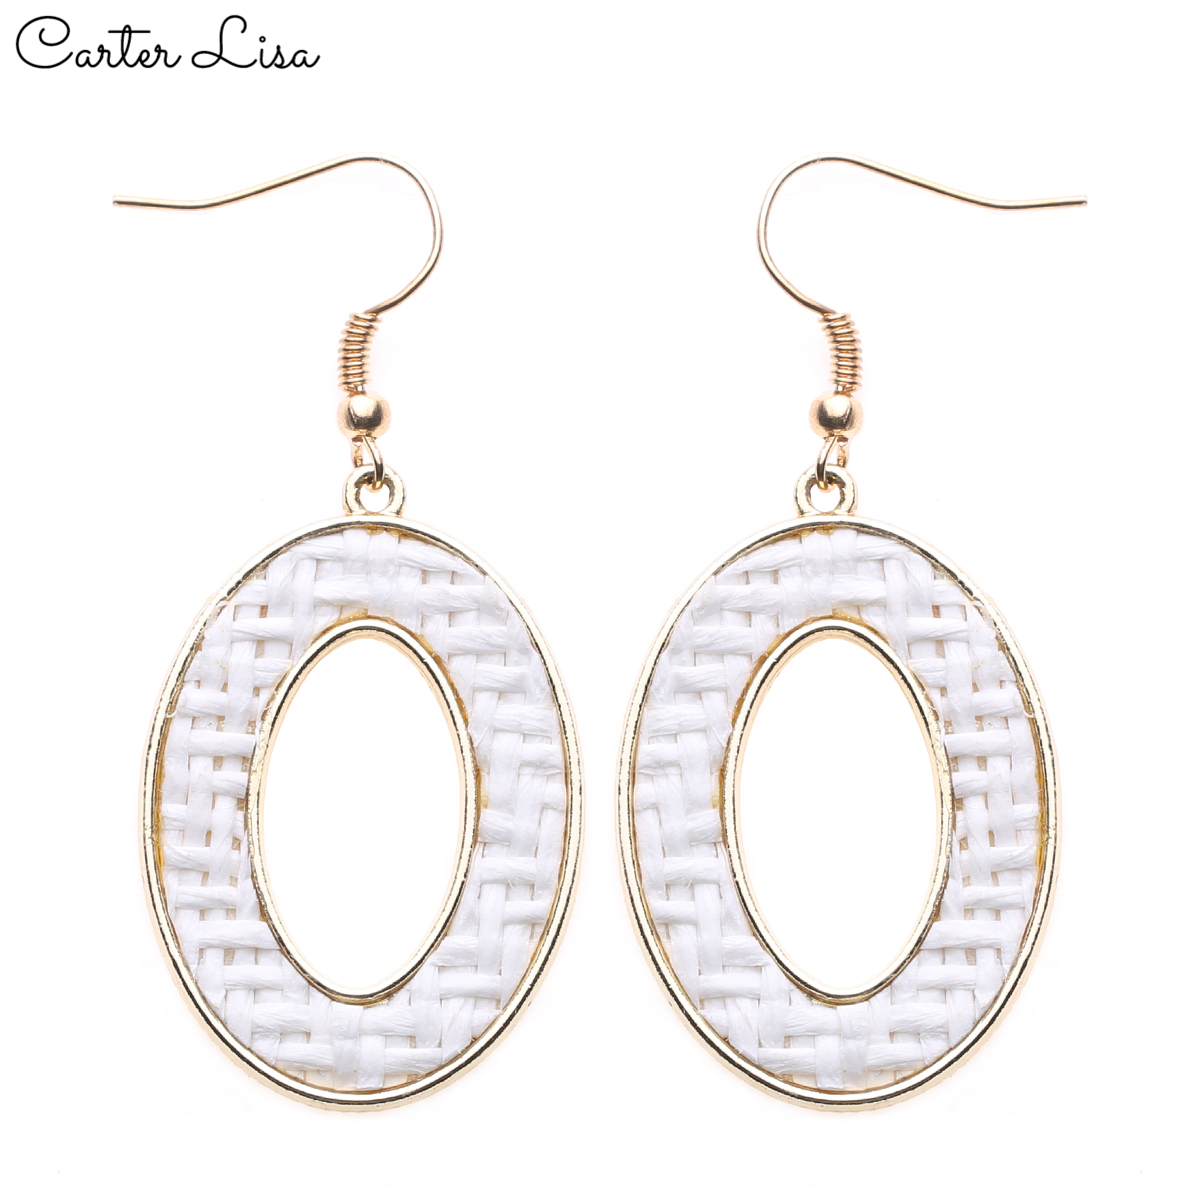 CARTER LISA 2019 New Personality Round White OL Earrings Eco-friendly Alloy Weaving Earrings For Women Ear Jewelry HDEA-084